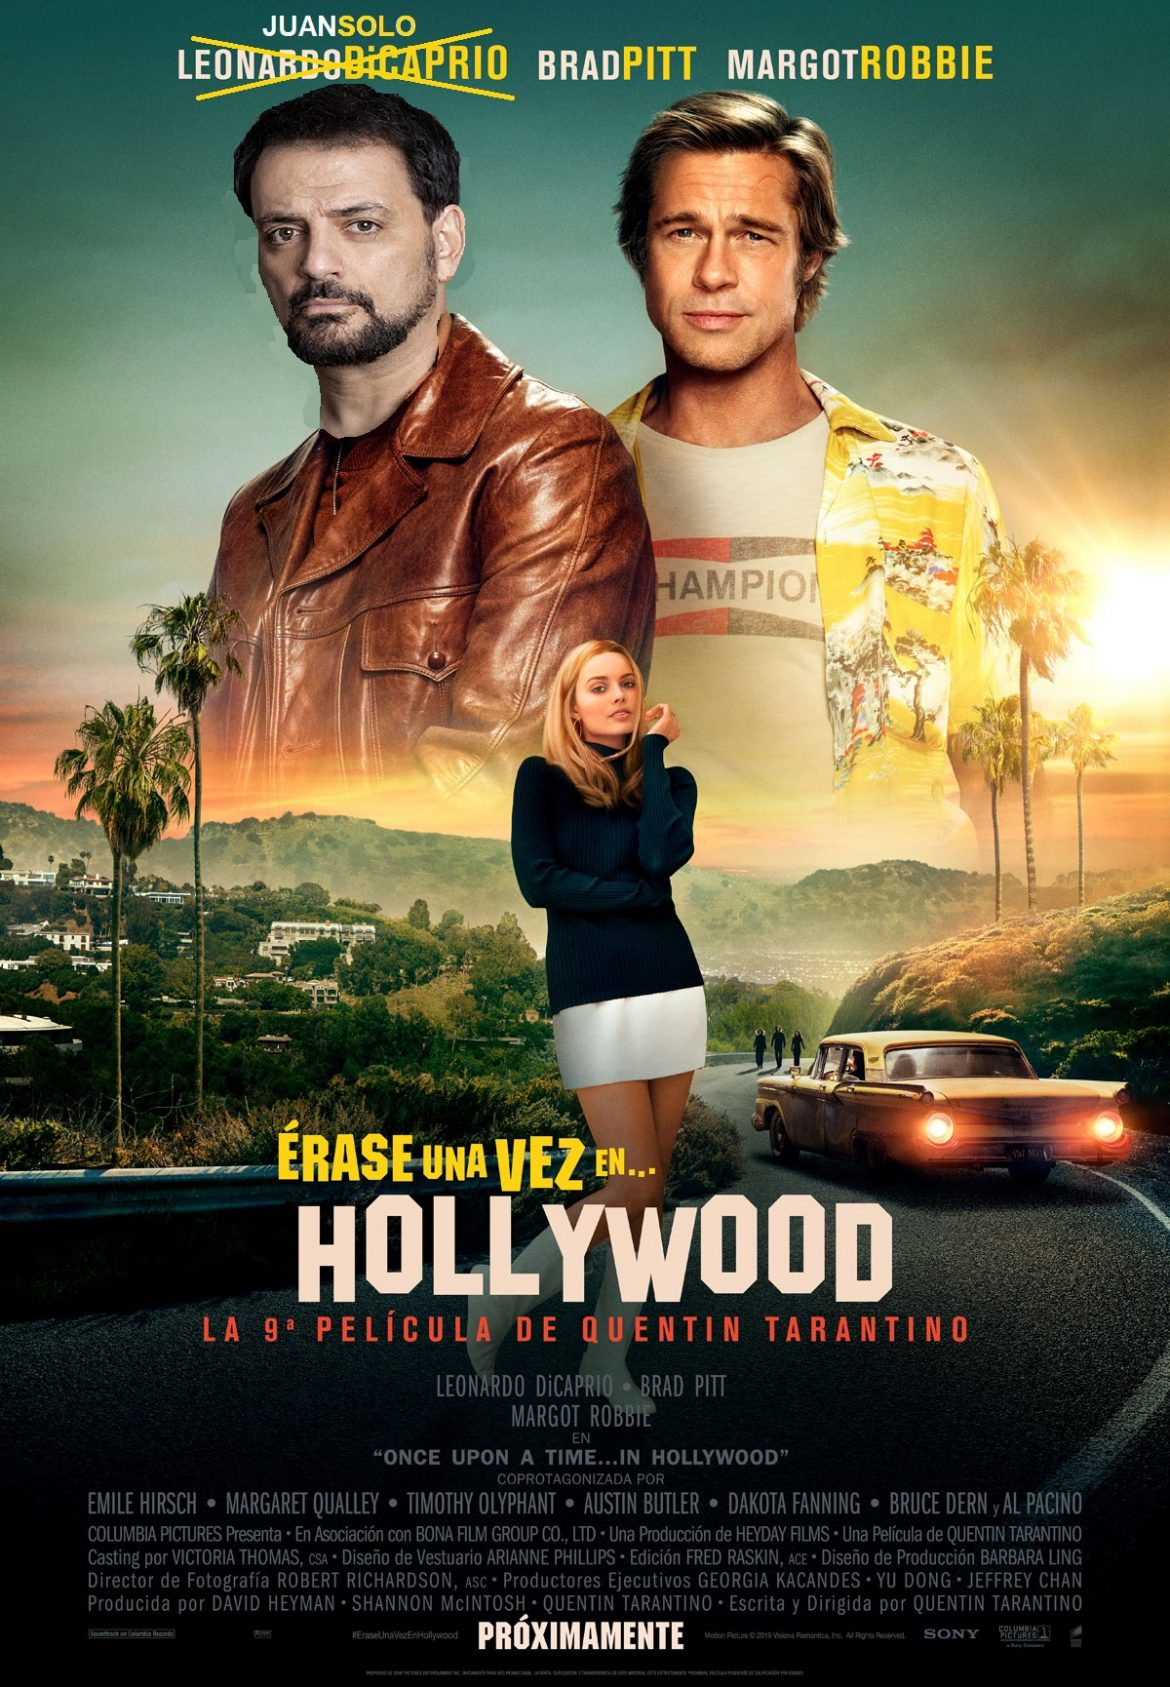 Cómo conseguir tu foto con el cartel de Hollywood - Juan Solo - Hollywood - Érase una vez en Hollywood - Hollywood Hills - Observatorio Griffith - Blog de Juan Solo